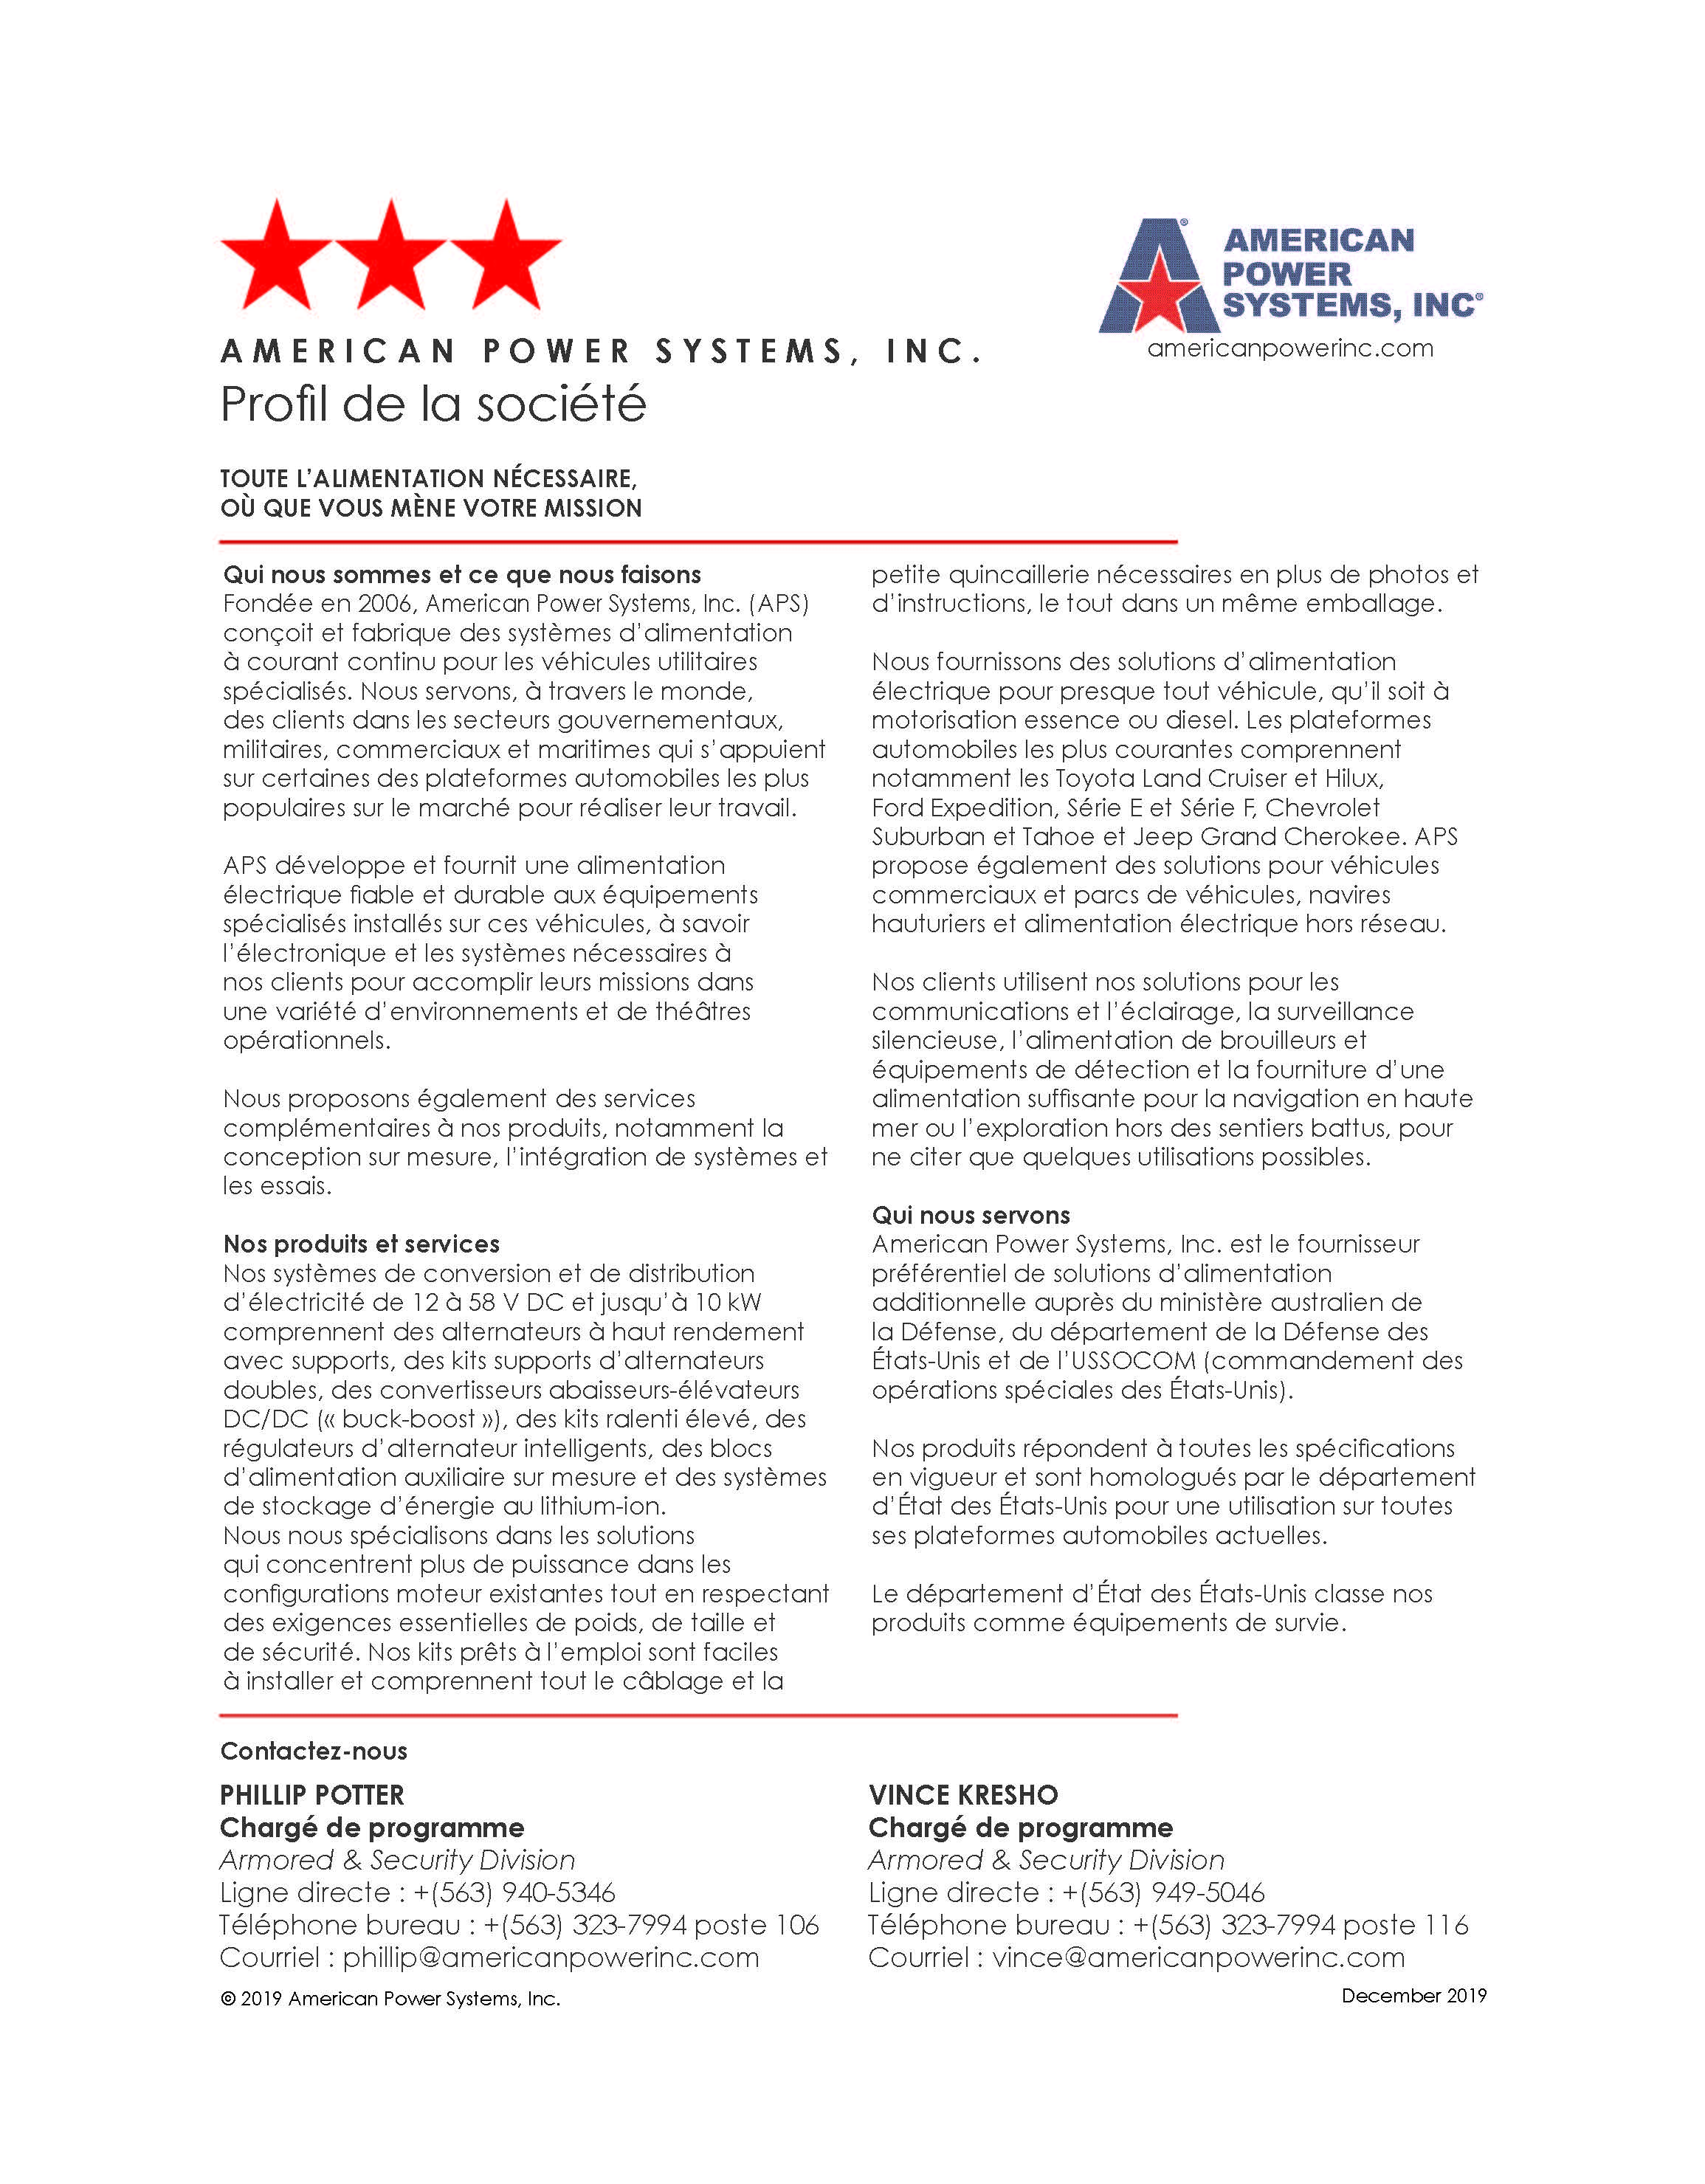 APS Business Profile French Version